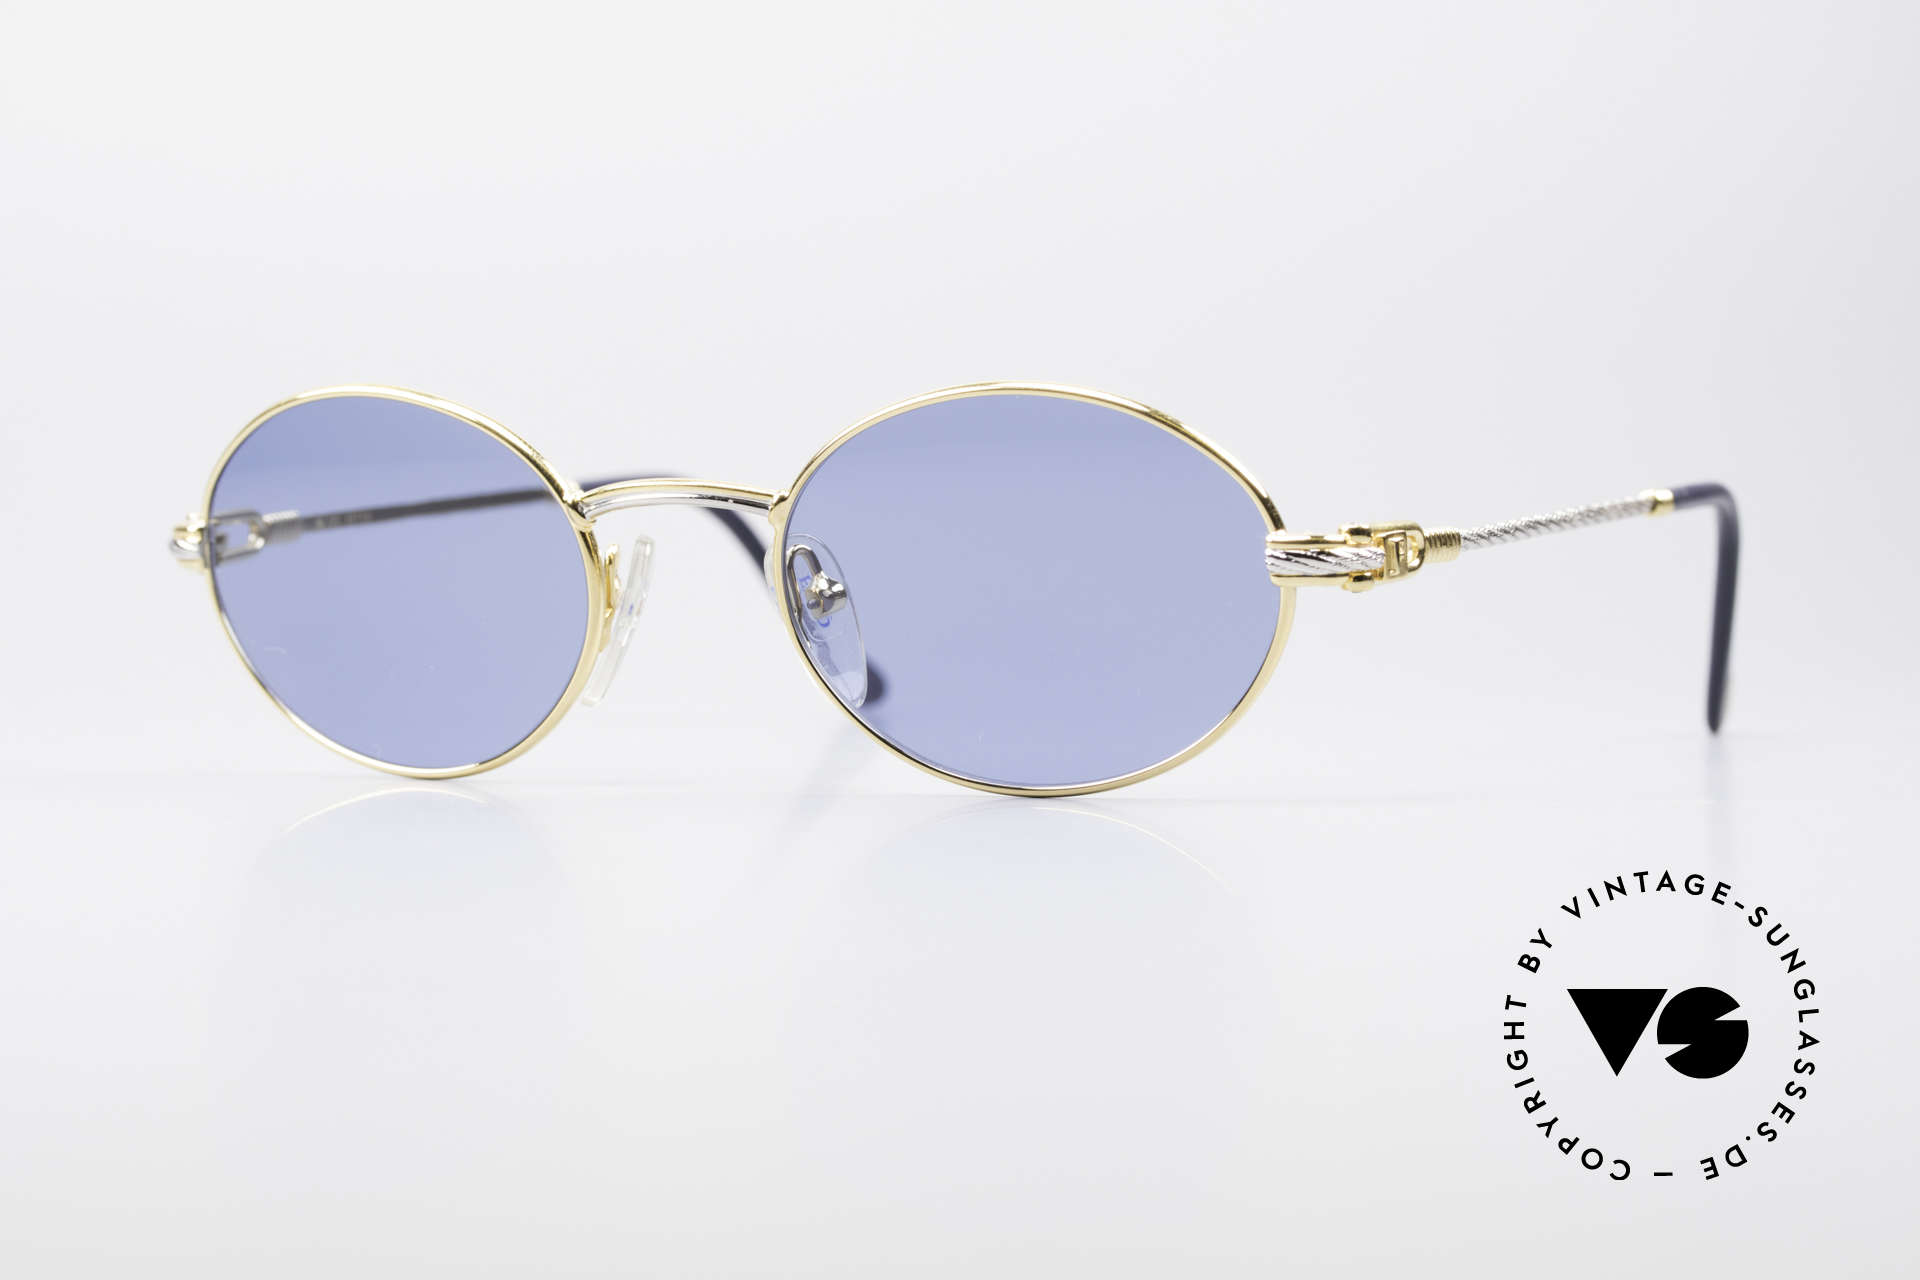 Fred Ketch Oval Luxury Sailing Sunglasses, rare vintage sunglasses by Fred, Paris from the 1980s, Made for Men and Women